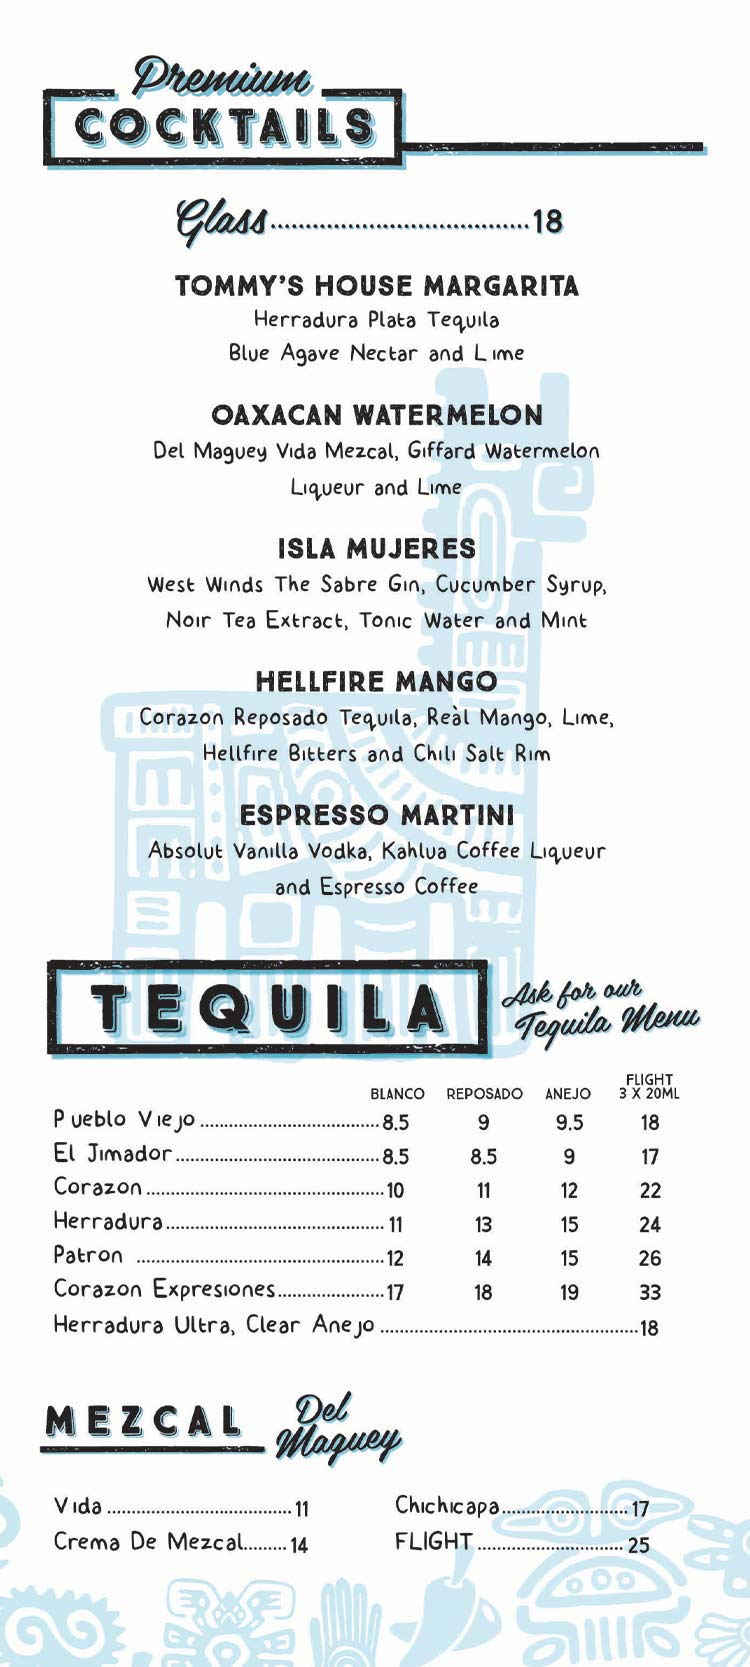 Drinks Menu at Mexican Kitchen- Premium Cocktails and Tequila